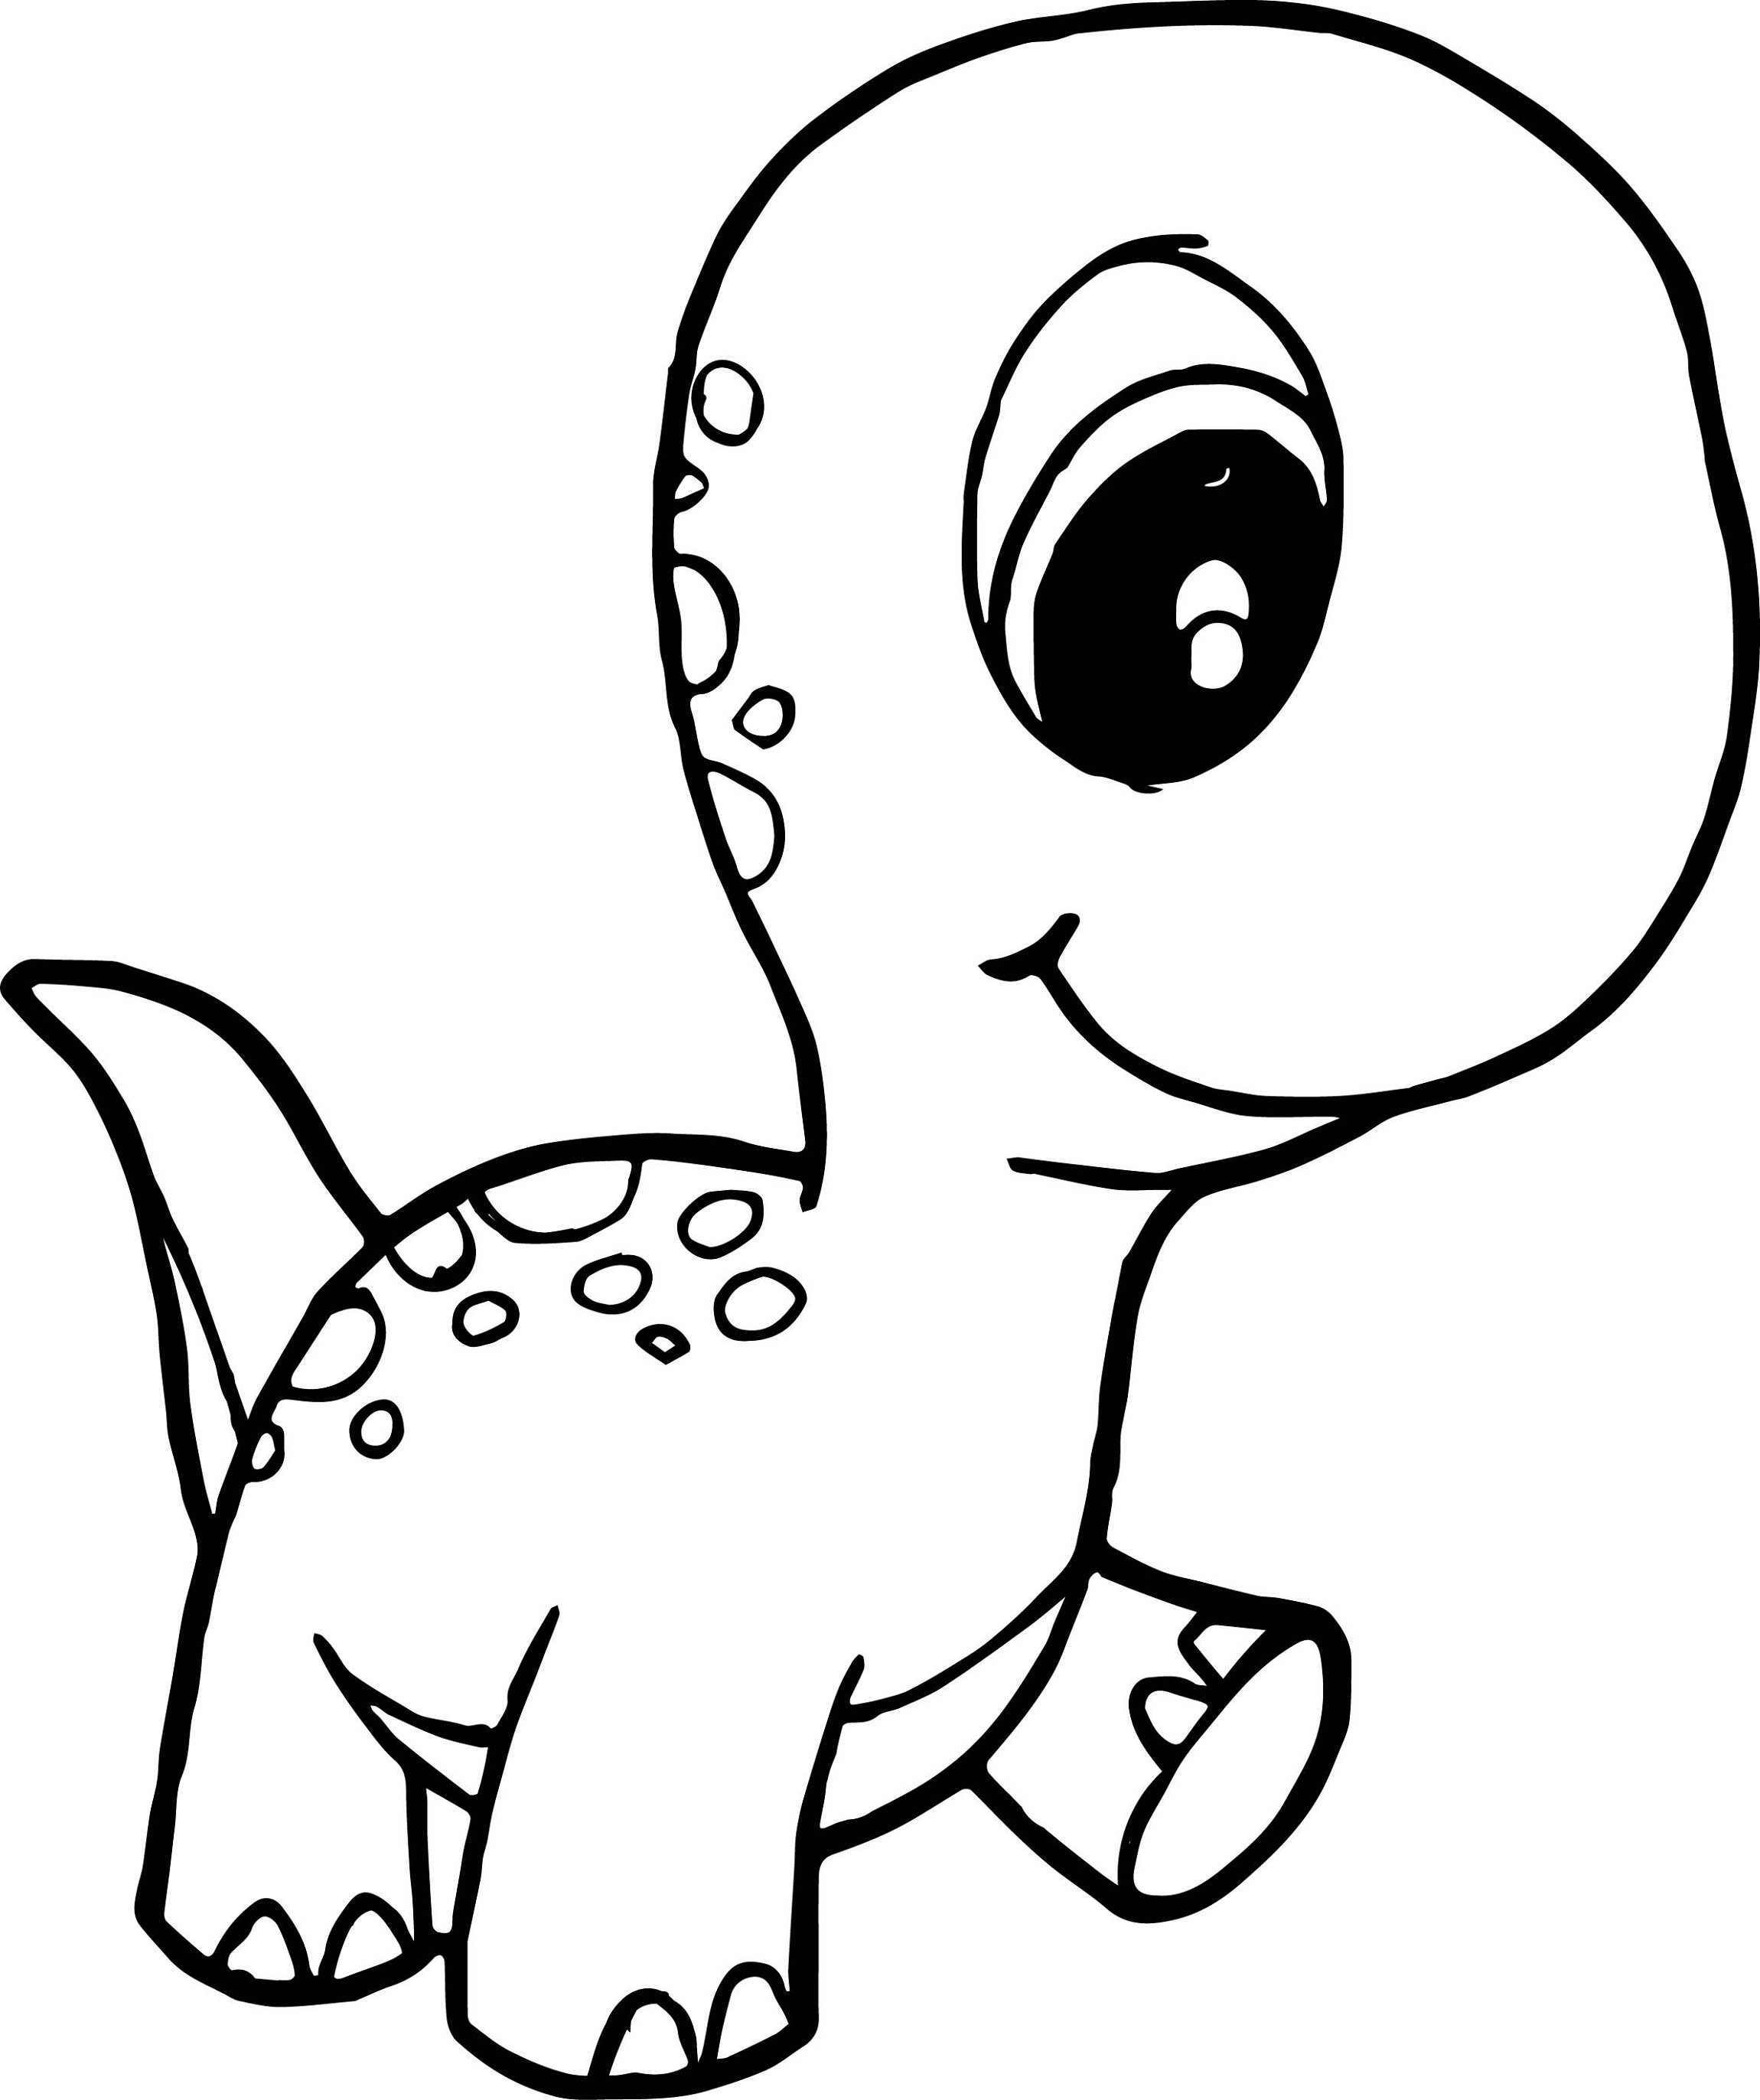 coloring dinosaur free printables free printable dinosaur coloring pages for kids free dinosaur coloring printables